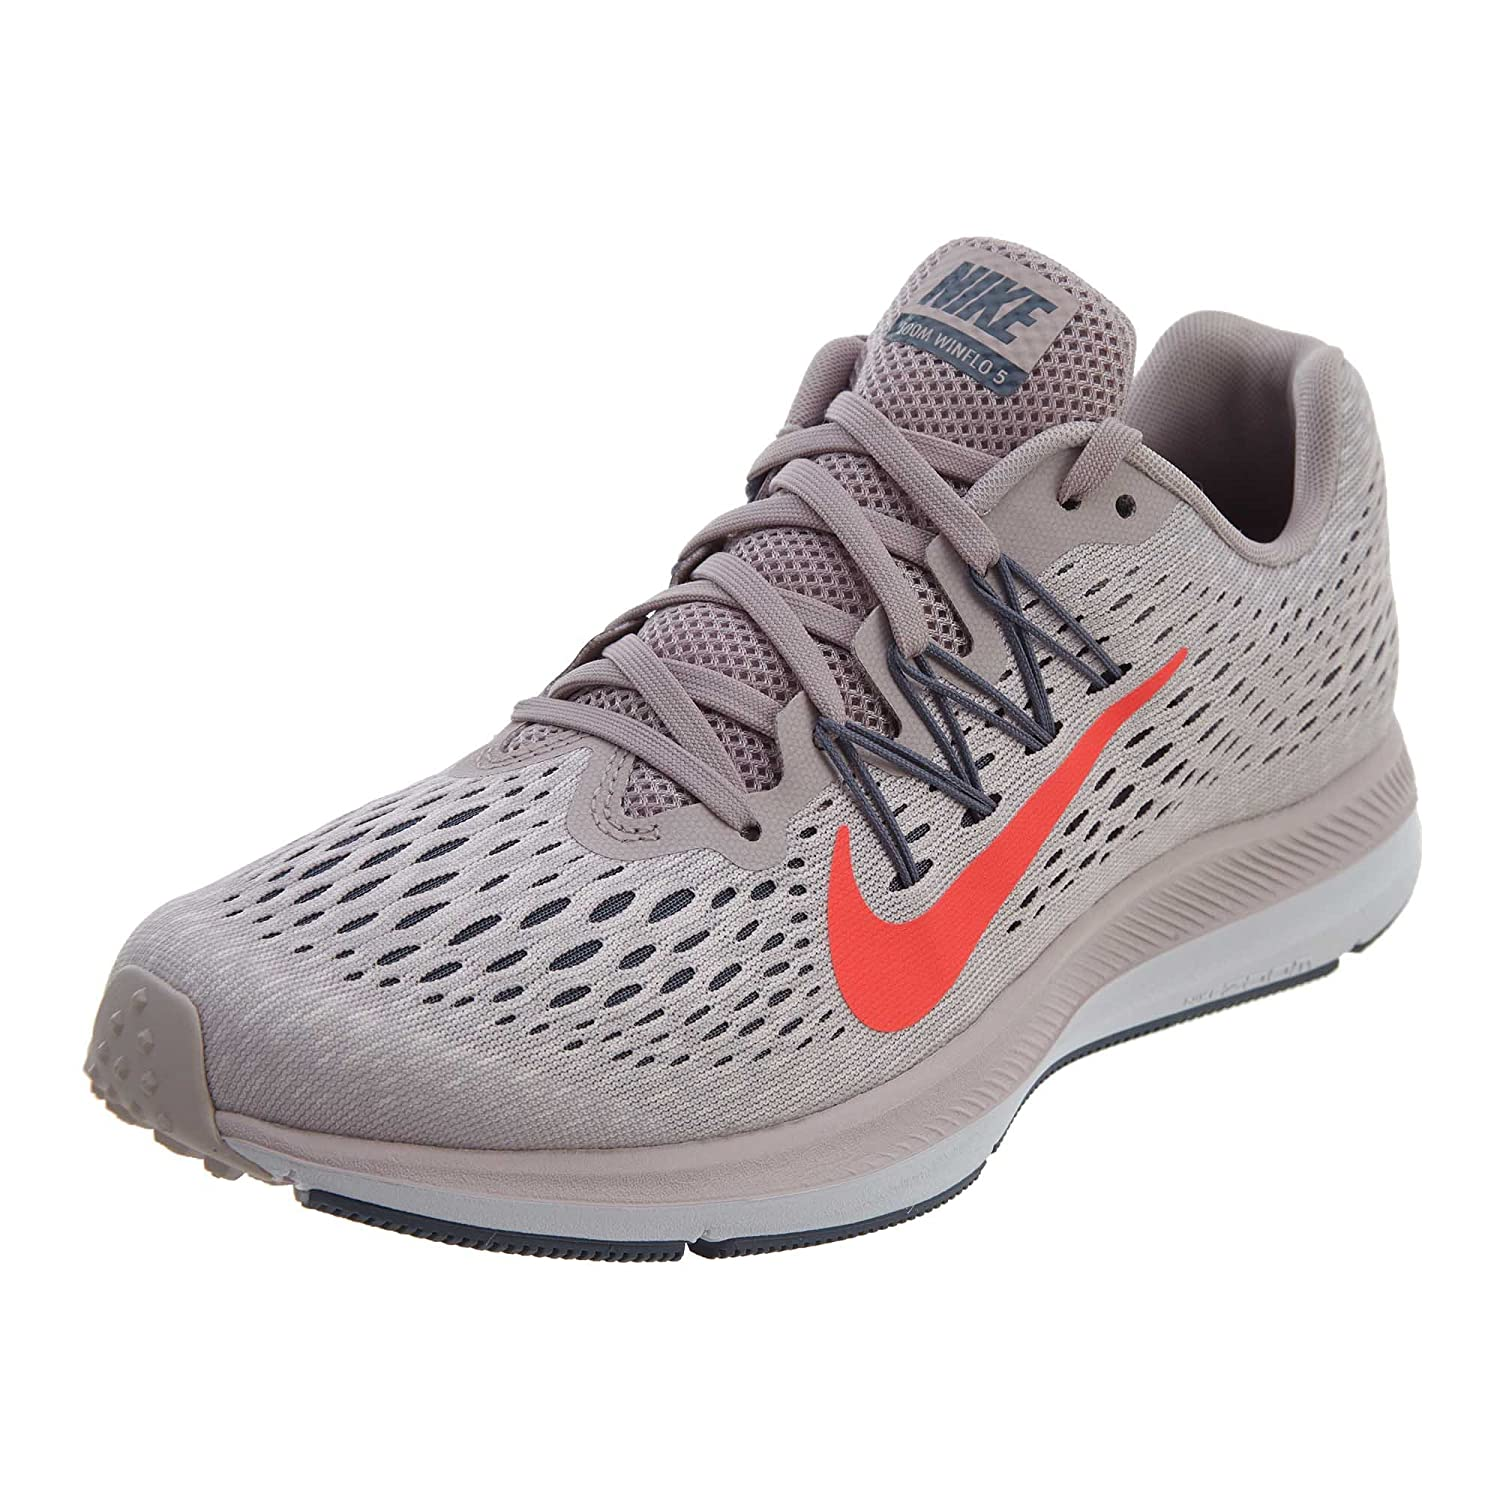 Image of Athletic Nike Women's Air Zoom Winflo 5 Running Shoe